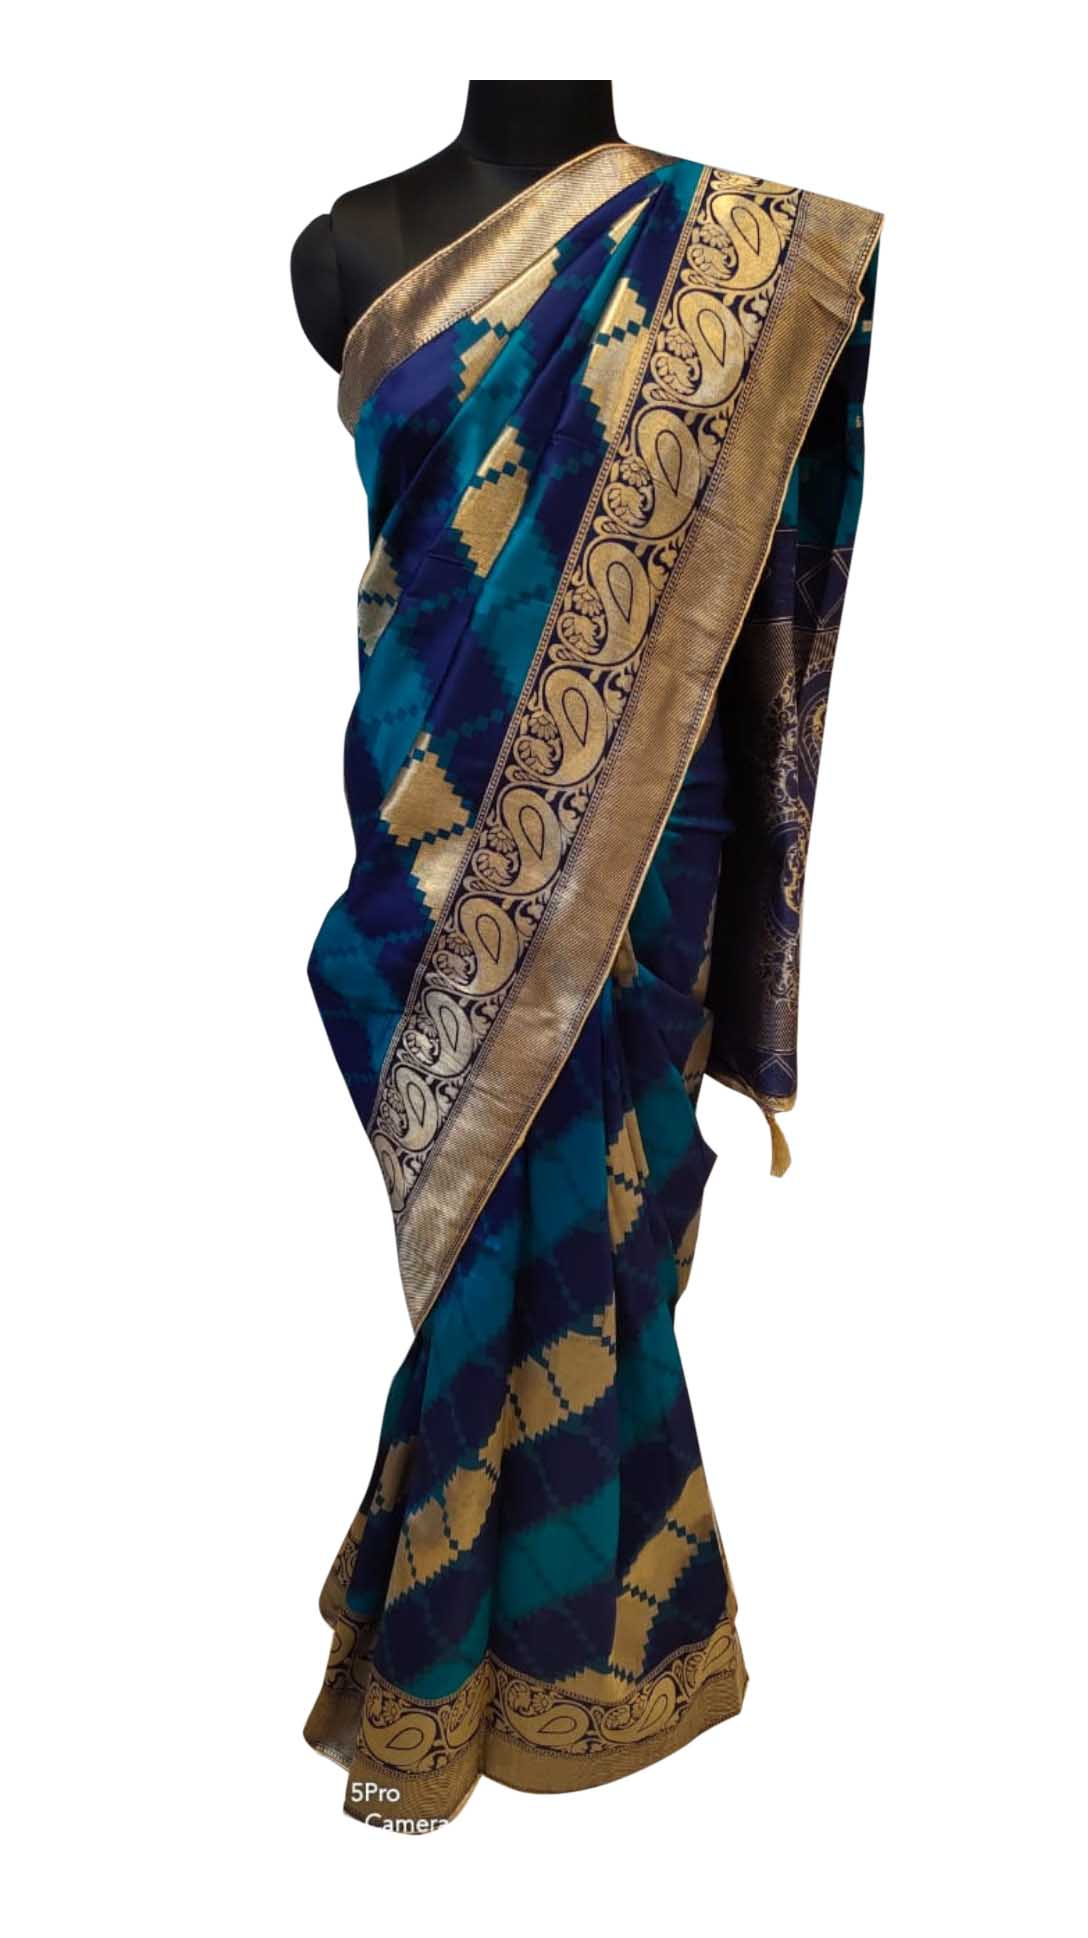 WOMEN SAREE WITH BLOUSE-GOLDEN NAVY-DF JACQUARD 02 2019